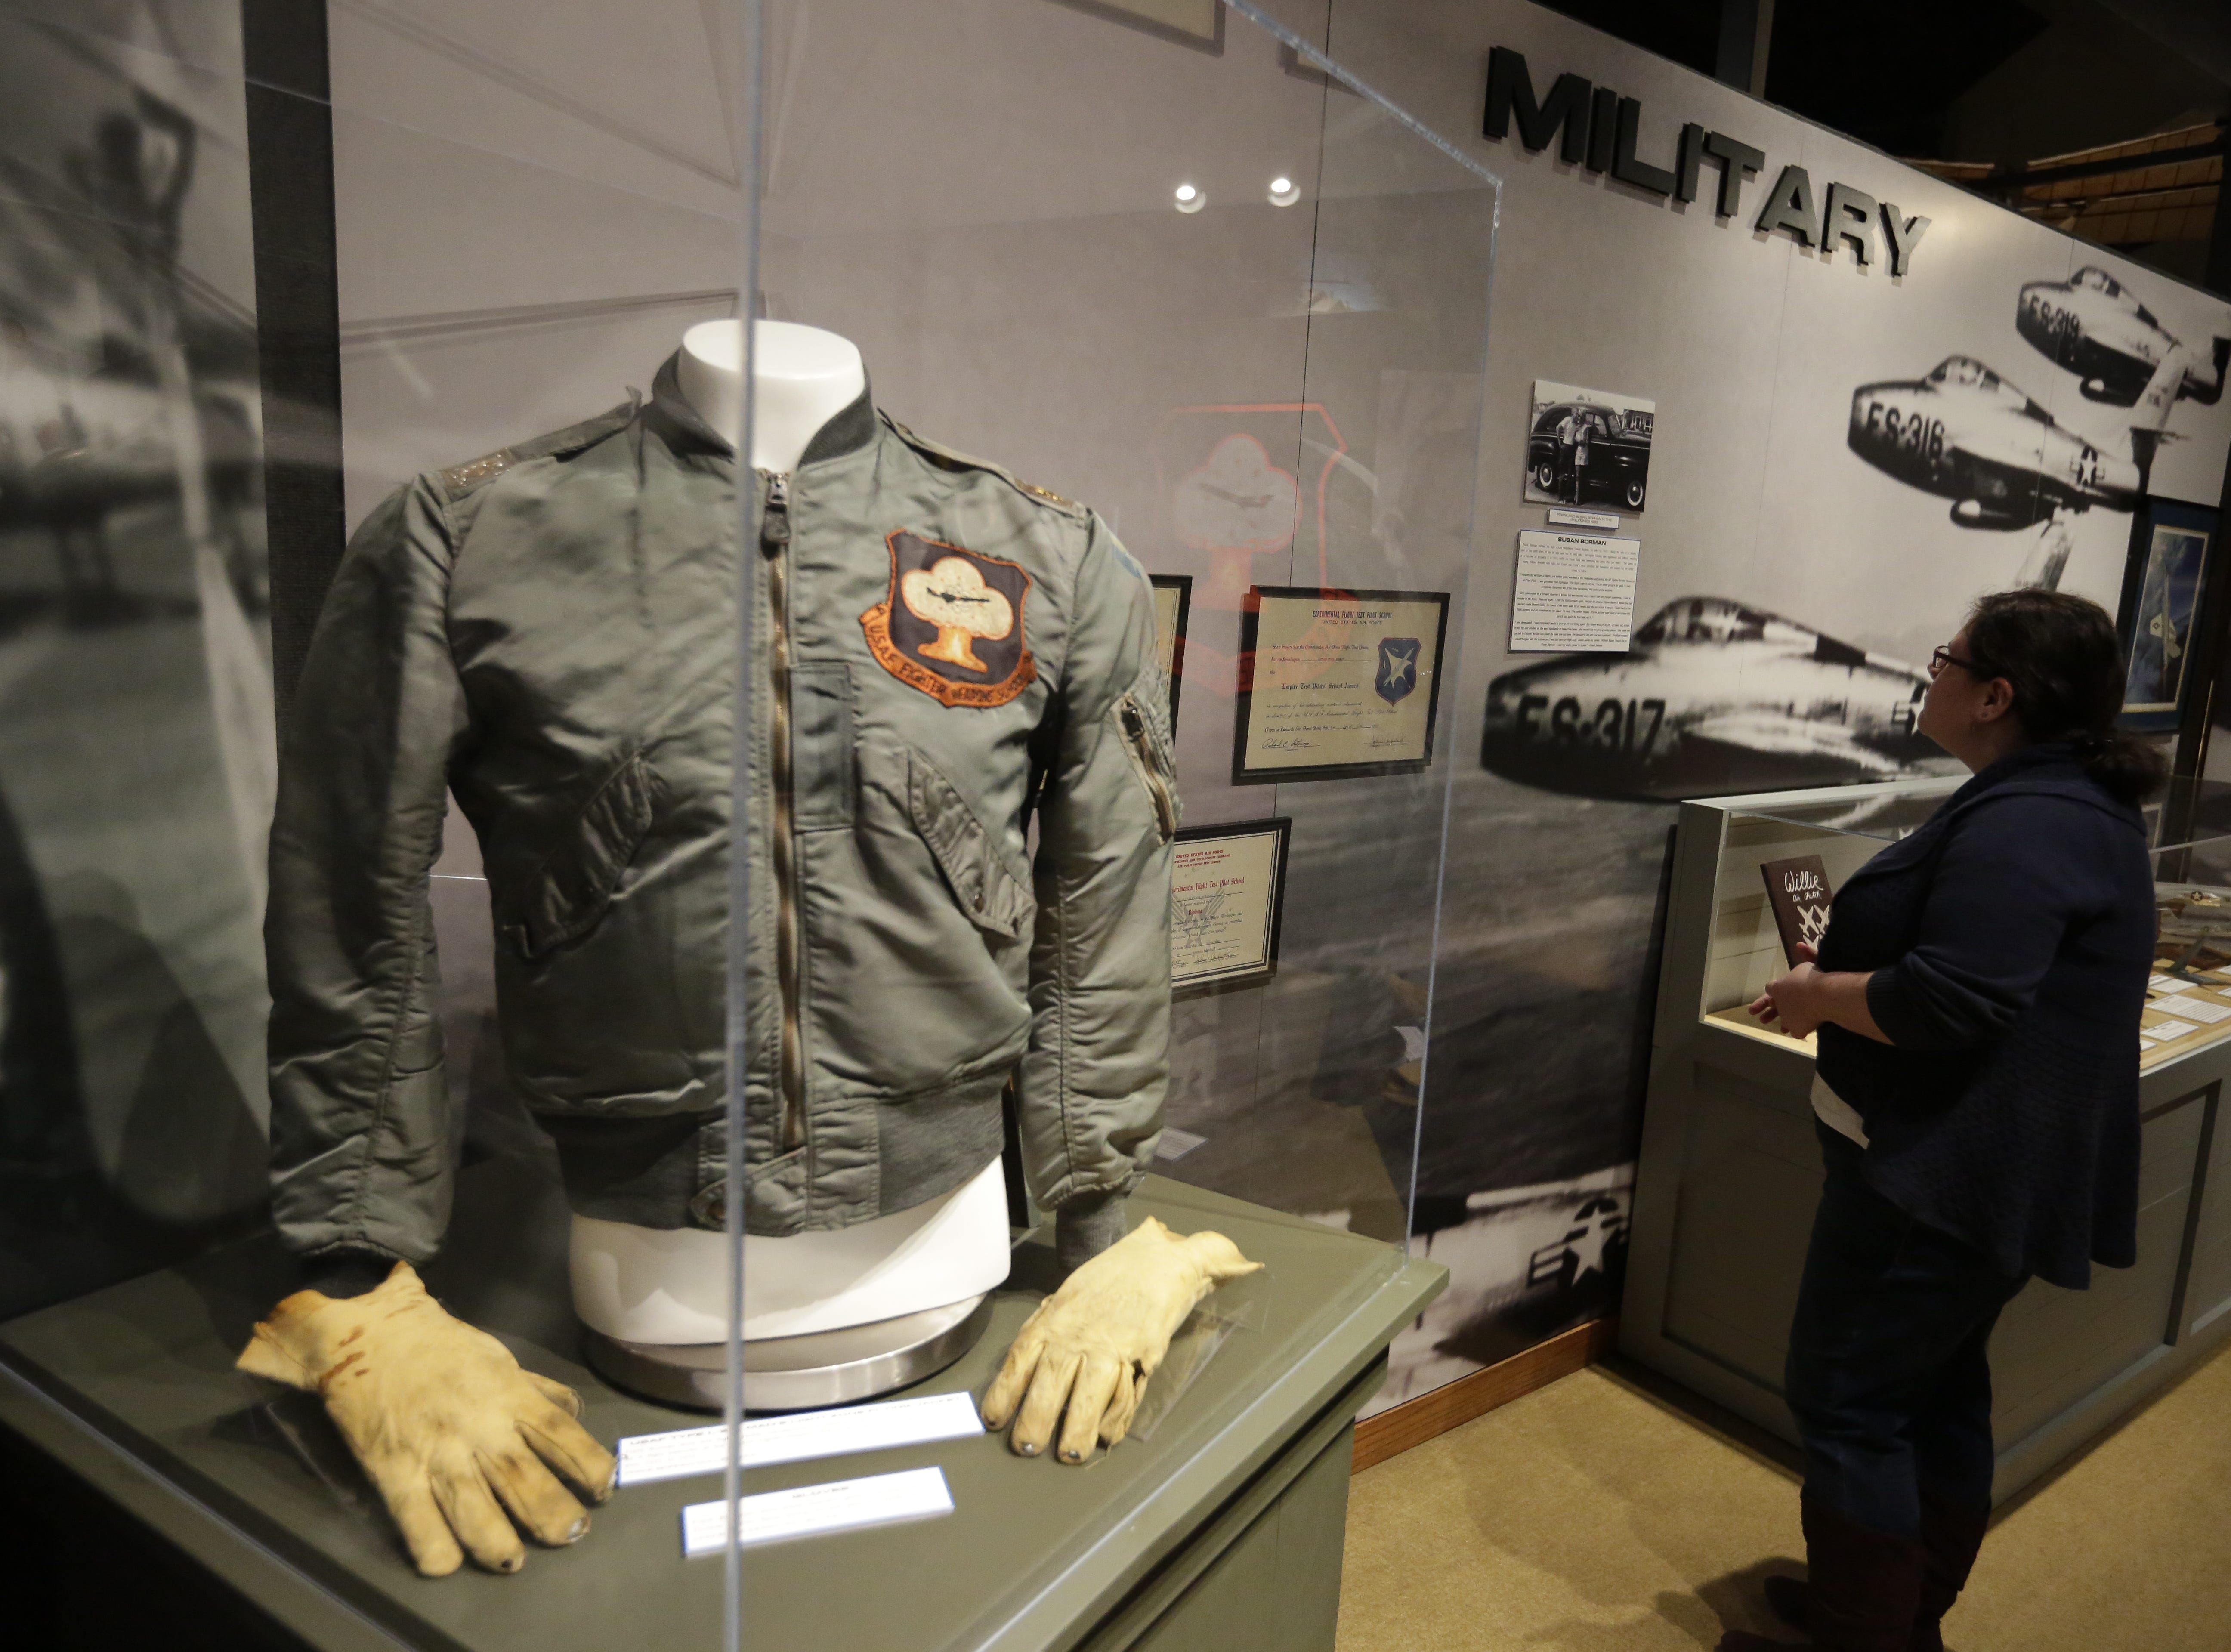 The EAA Aviation Museum in Oshkosh, Wis. has opened ÒThe Borman Collection: An EAA MemberÕs Space Odyssey,Ó an exhibit that features the personal archives and memorabilia of astronaut Frank Borman, who was on the leading edge of AmericaÕs space program through the 1960s. The new exhibit was formally opened with a ribbon cutting by Borman on Friday, December 7, 2018.Joe Sienkiewicz/USA Today NETWORK-Wisconsin